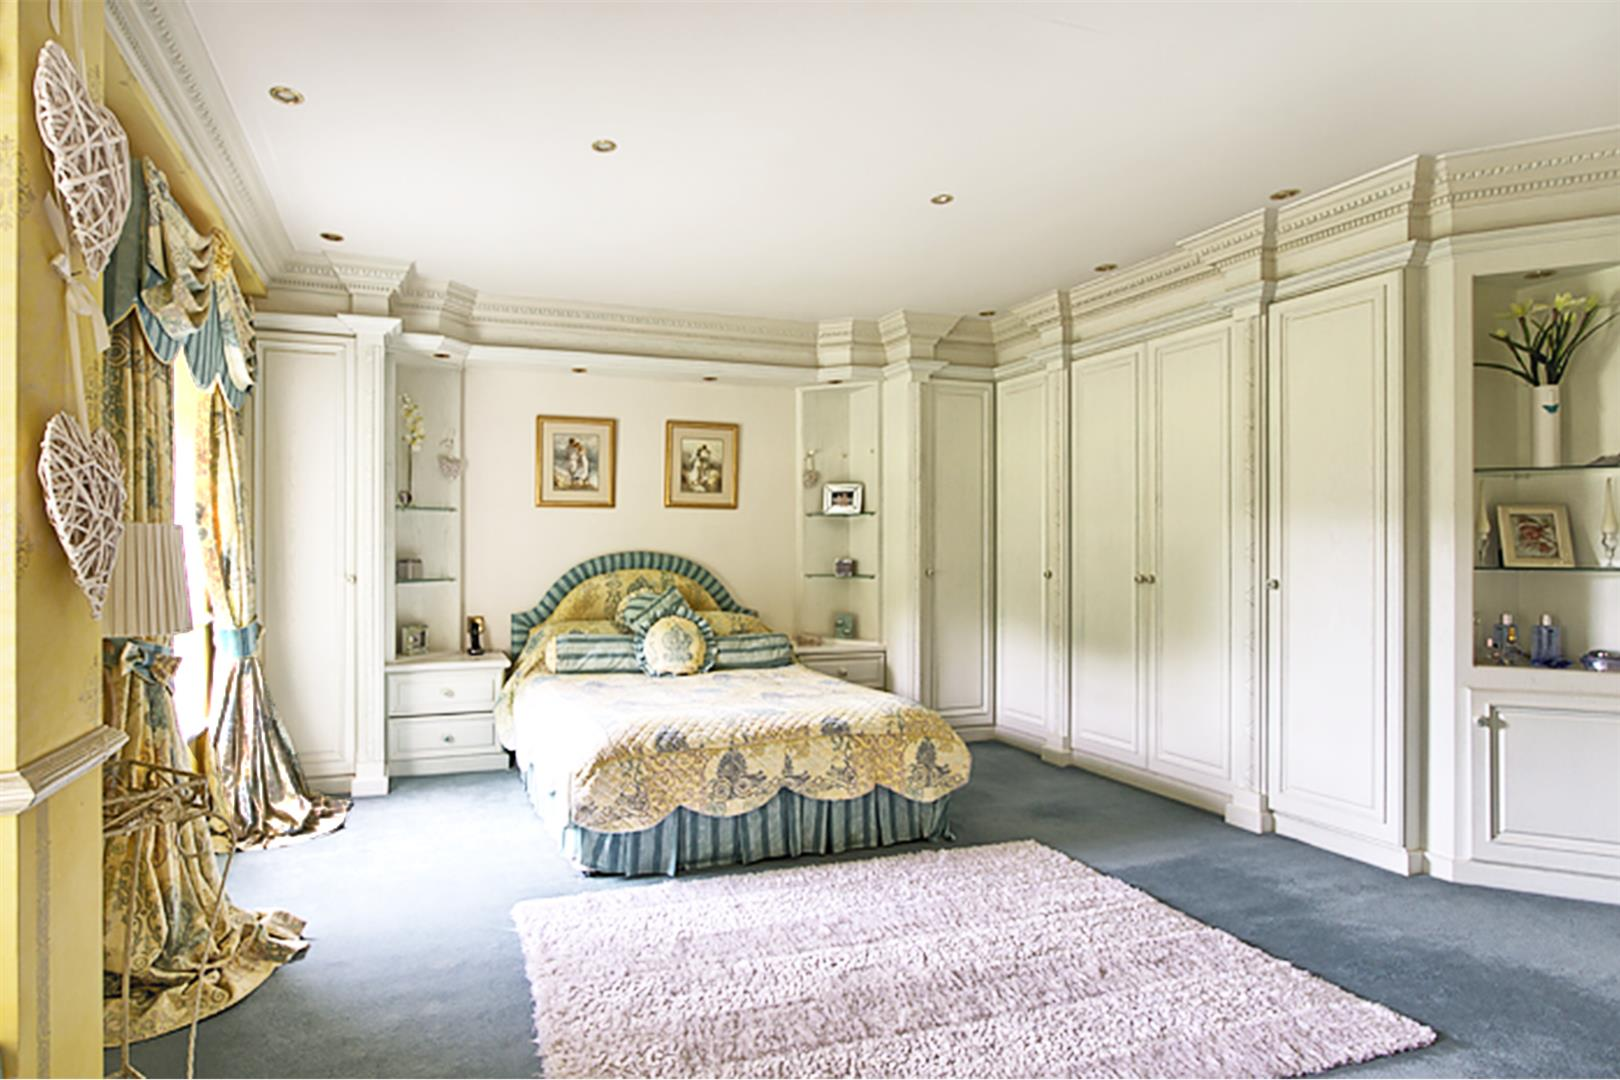 4 bedroom house For Sale in Bolton - bed 2.png.